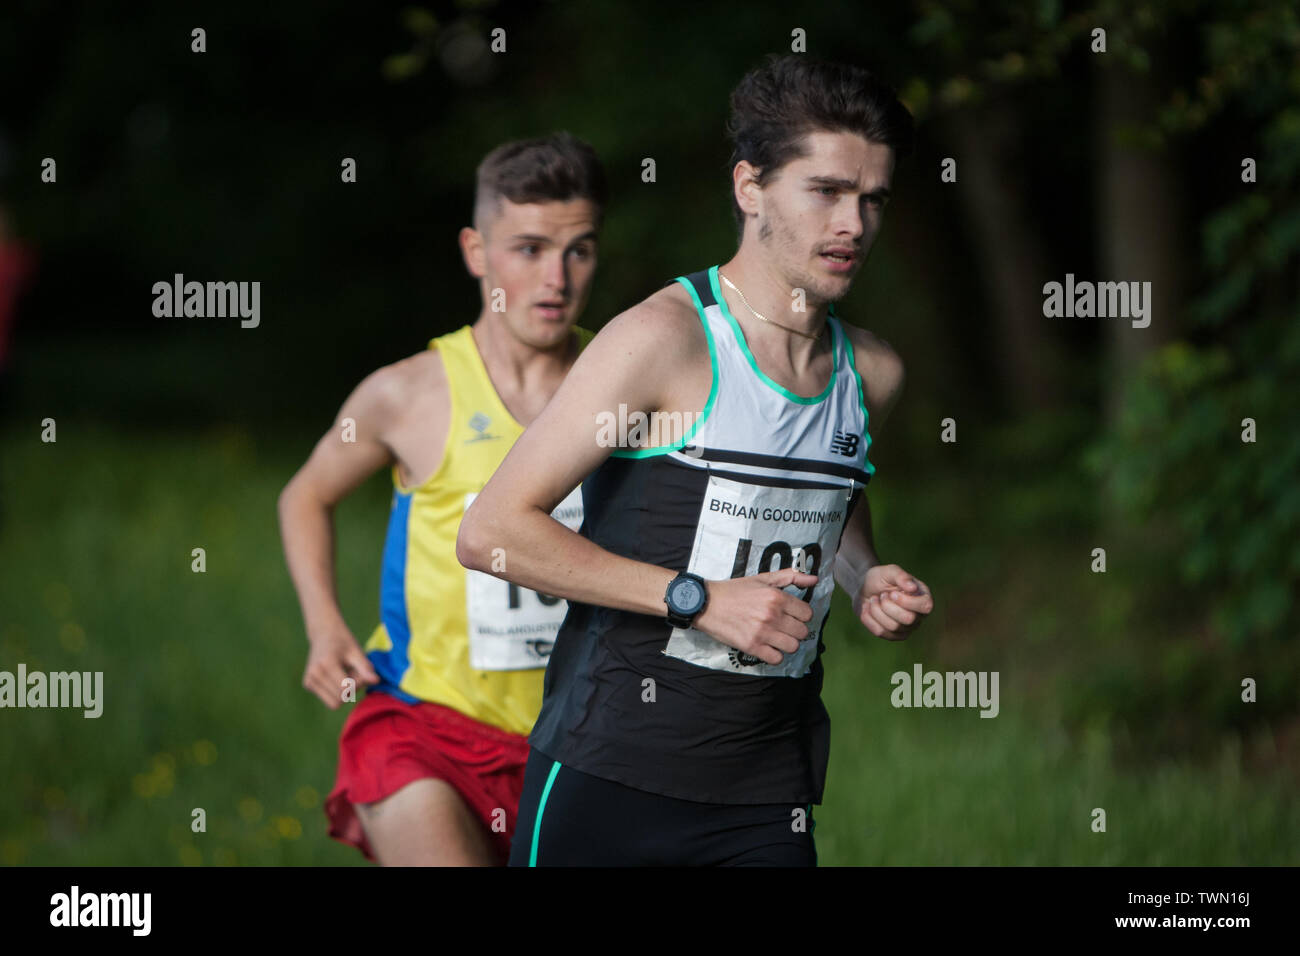 Glasgow, Scotland. 21st June, 2019. The Brian Goodwin Memorial 10km road race, hosted by Bellahouston Harriers running club, and held in Glasgow's scenic Pollok Country Park, was tonight won by Olympian Callum Hawkins in a time of 29minutes 06secs. (Hawkins wears Bib 199, Kilbarchan AAC); 2nd male was Jamie Crow (Bib 108, Central AC)) with a Personal Best time of 29min 43sec, and 3rd male was James Donald (30:11, Bib 130, Dundee Hawkhill Harriers).  Credit: jeremy sutton-hibbert/Alamy Live News Stock Photo